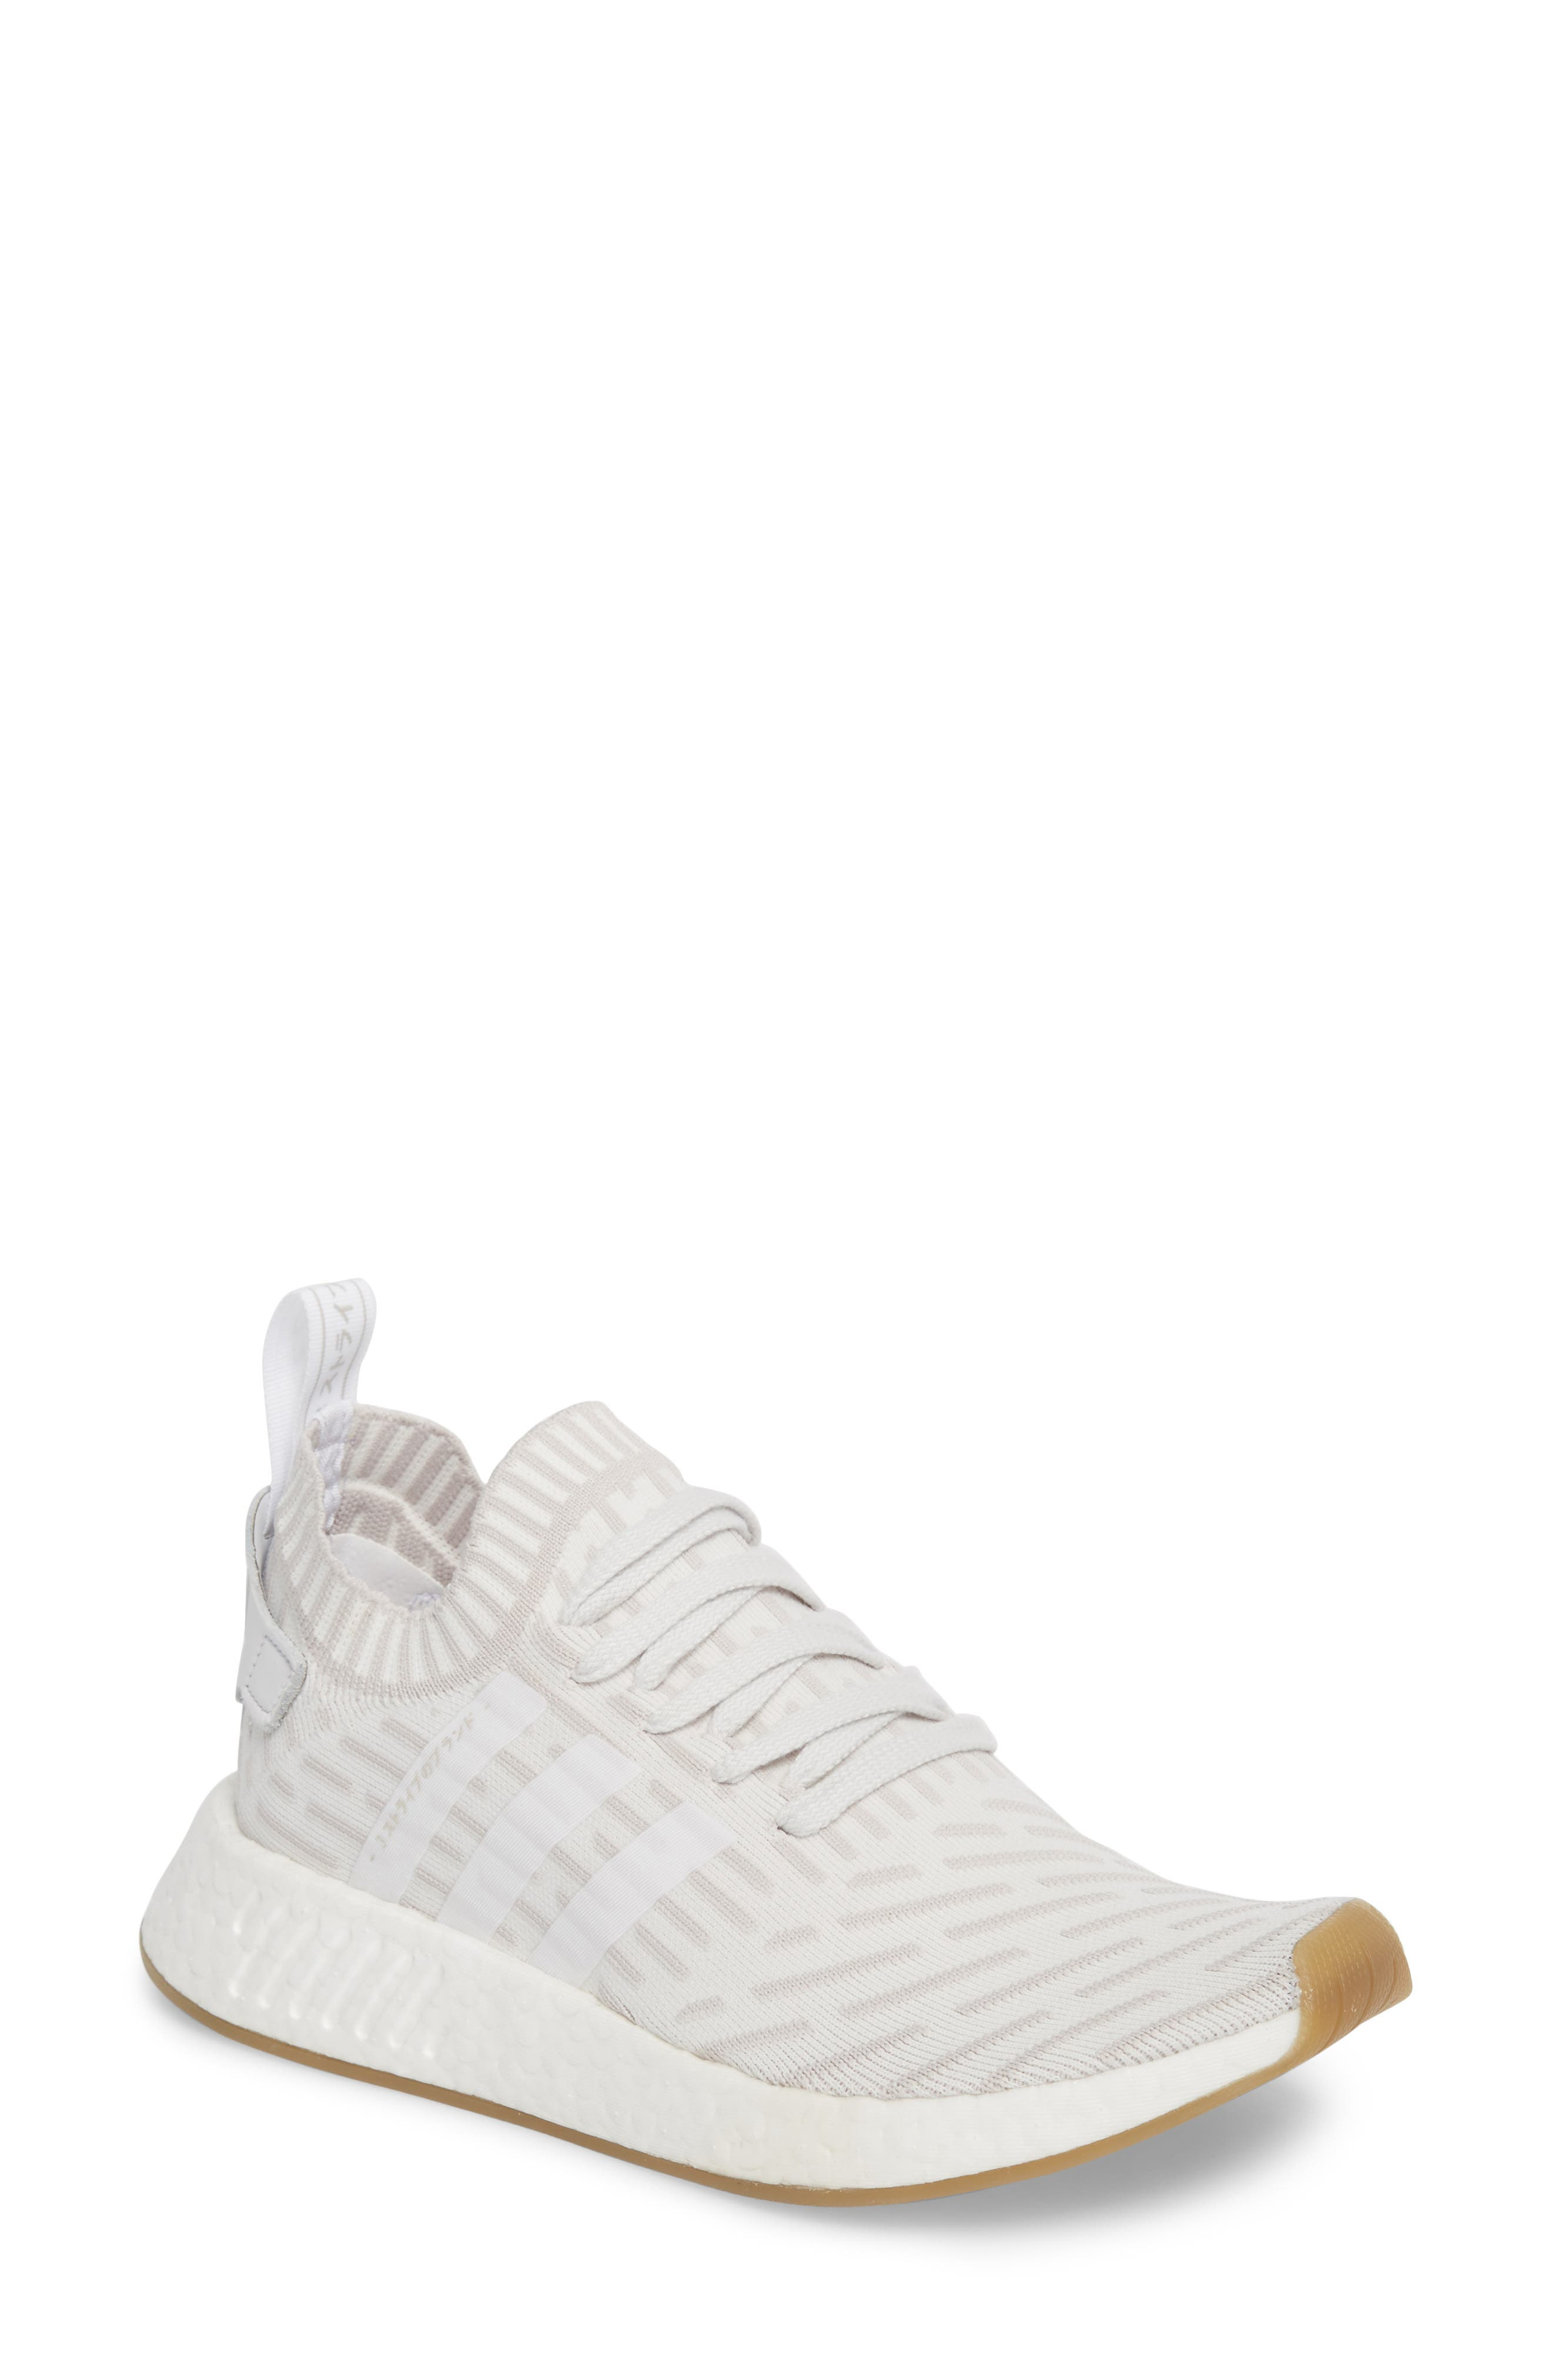 adidas NMD R2 Primeknit Athletic Shoe (Women)